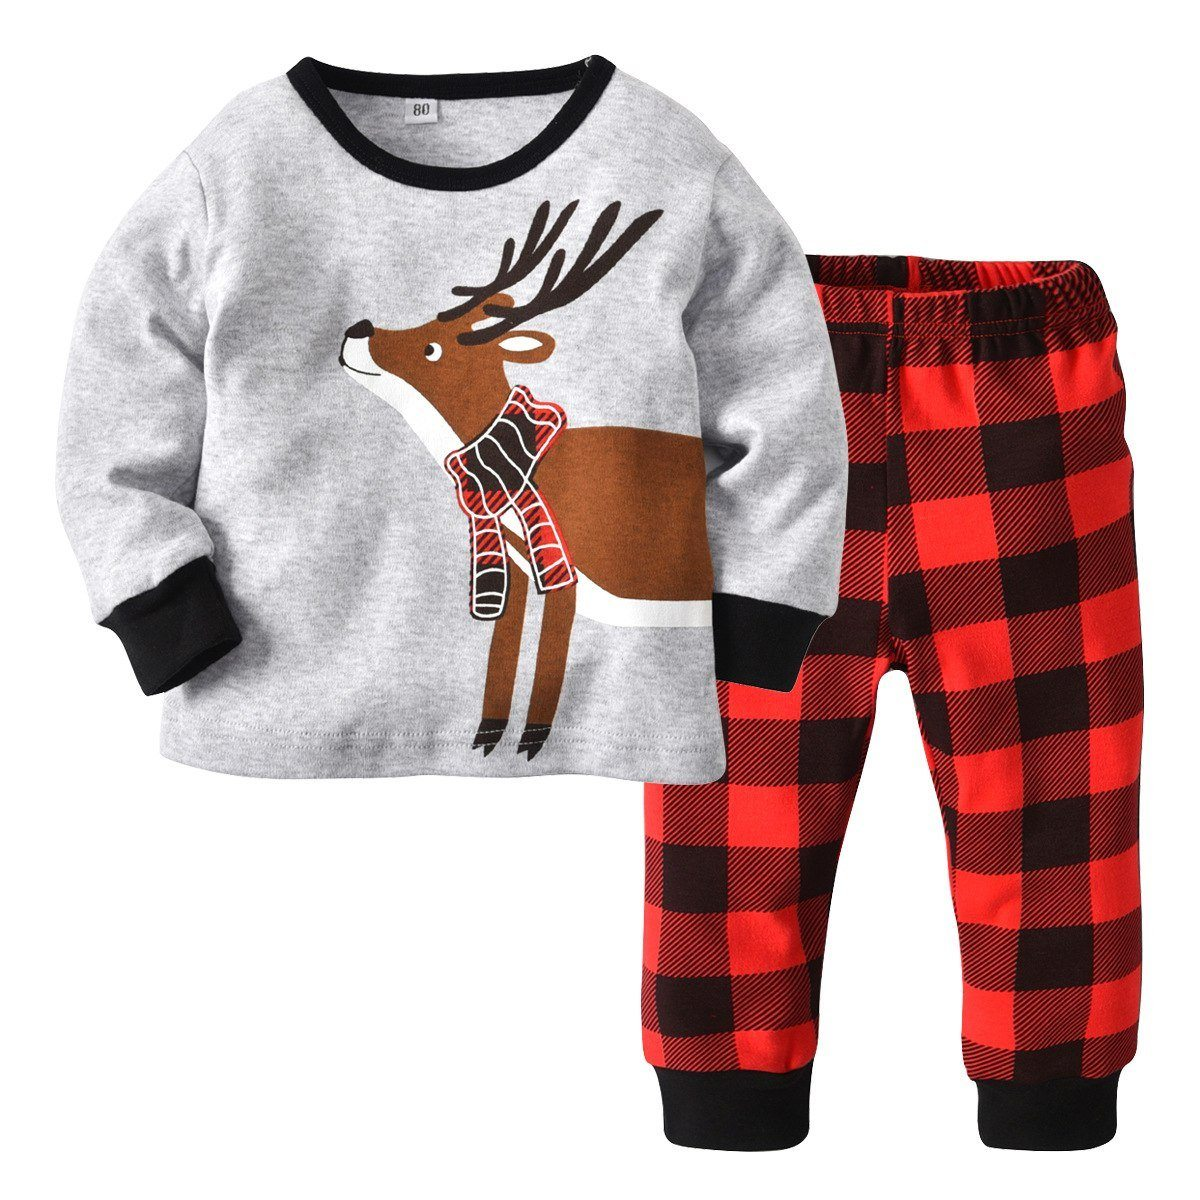 Santa's Reindeer Plaid Set